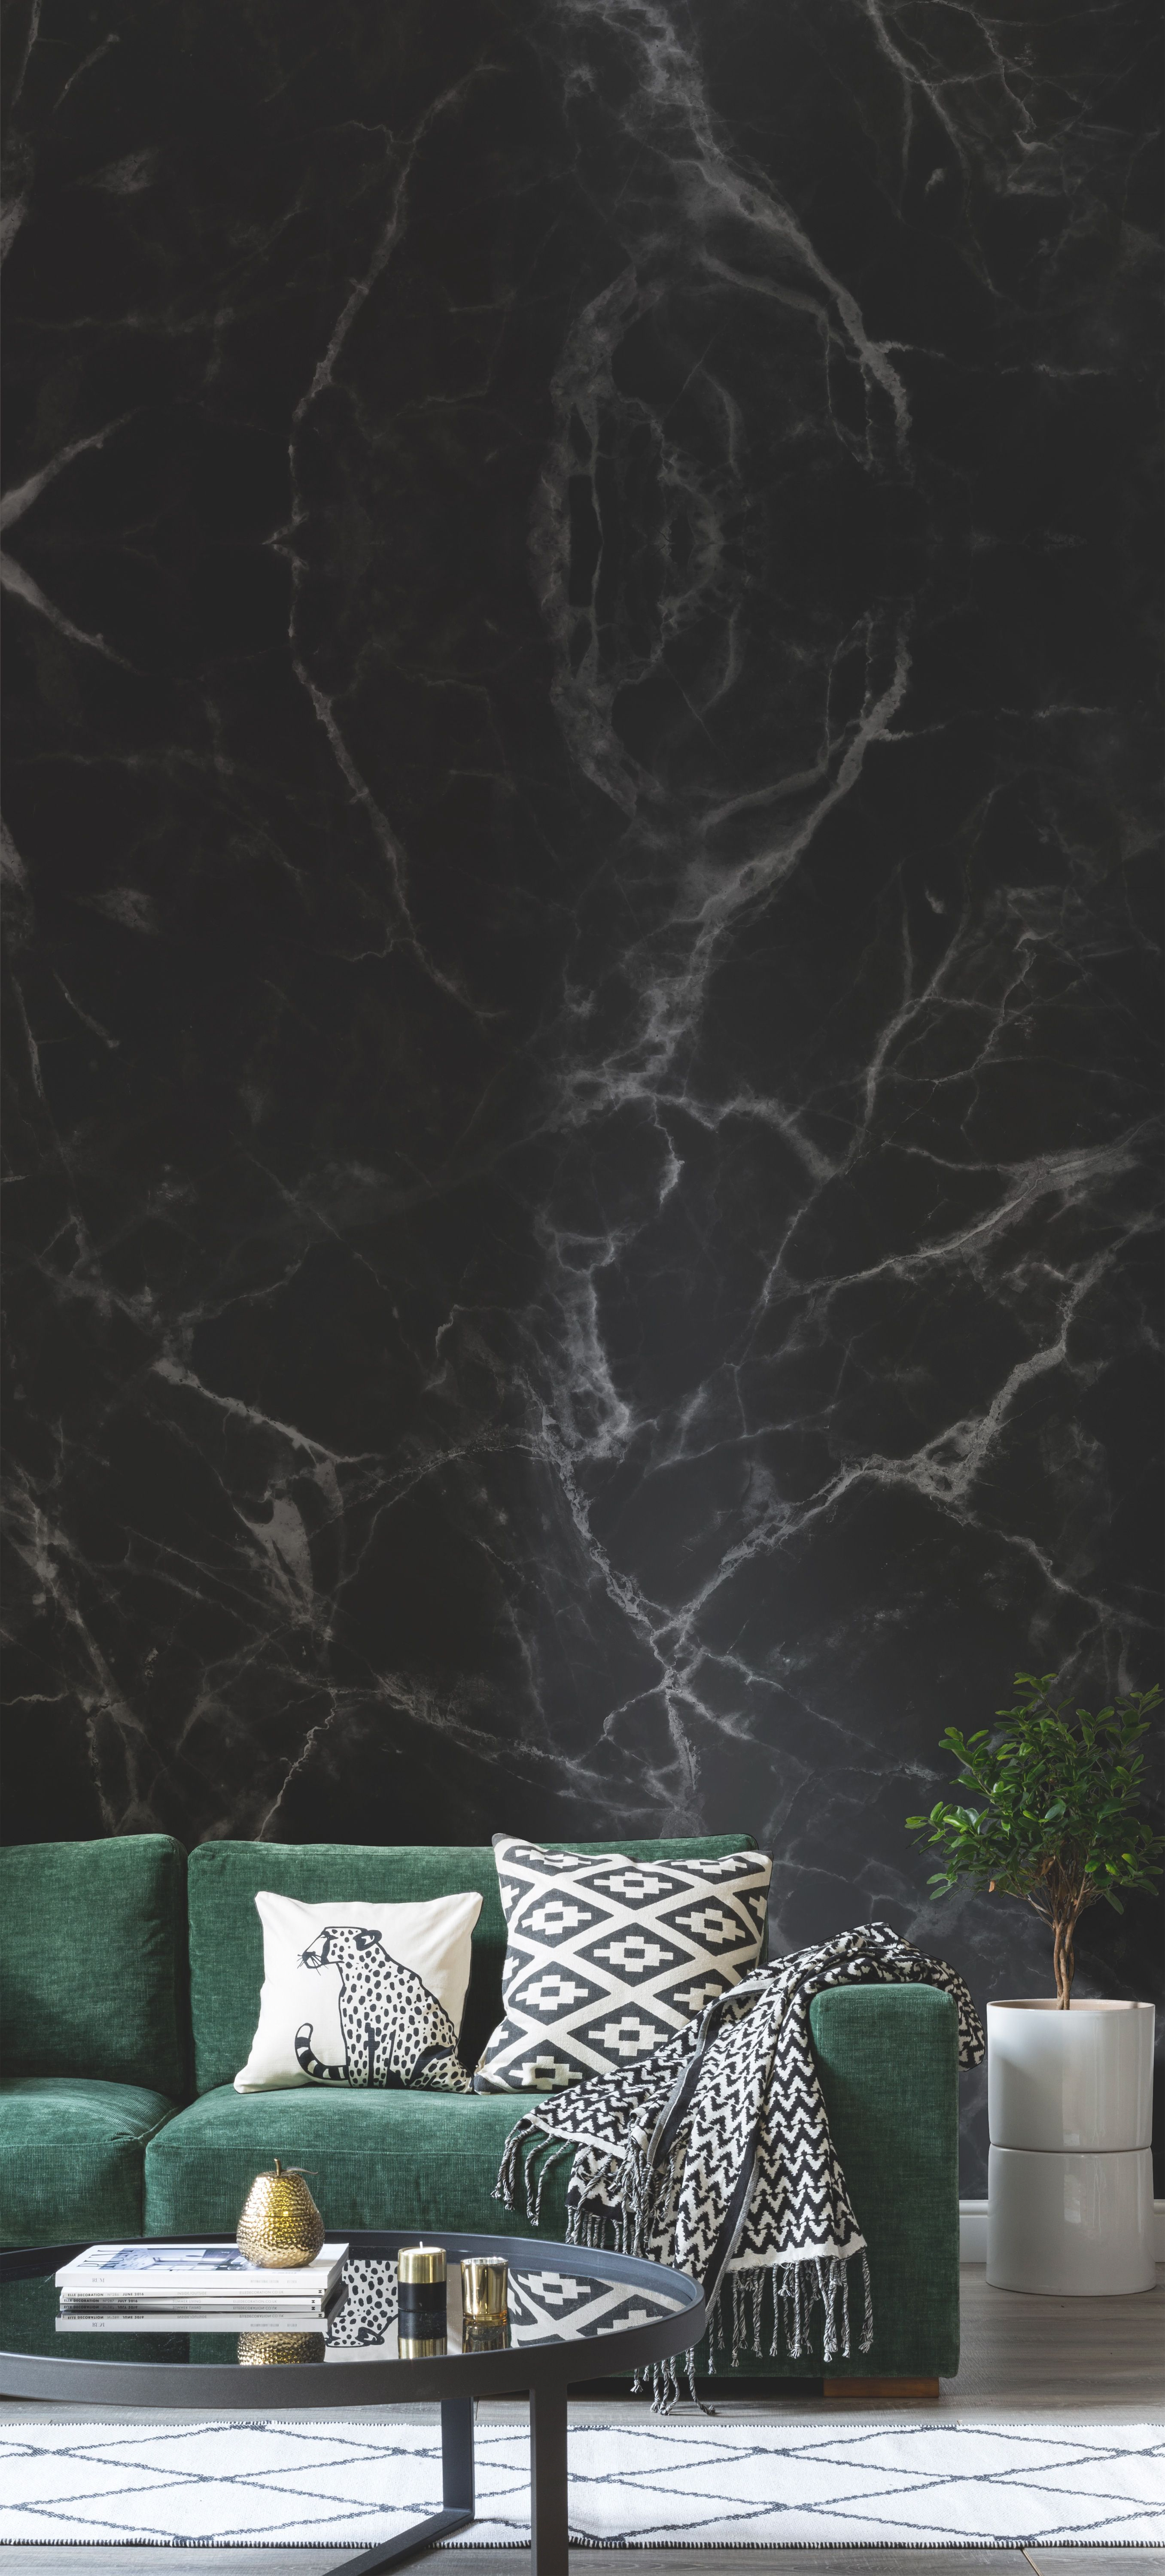 21 Excellent Living Room Black Marble To Build Your Dream H